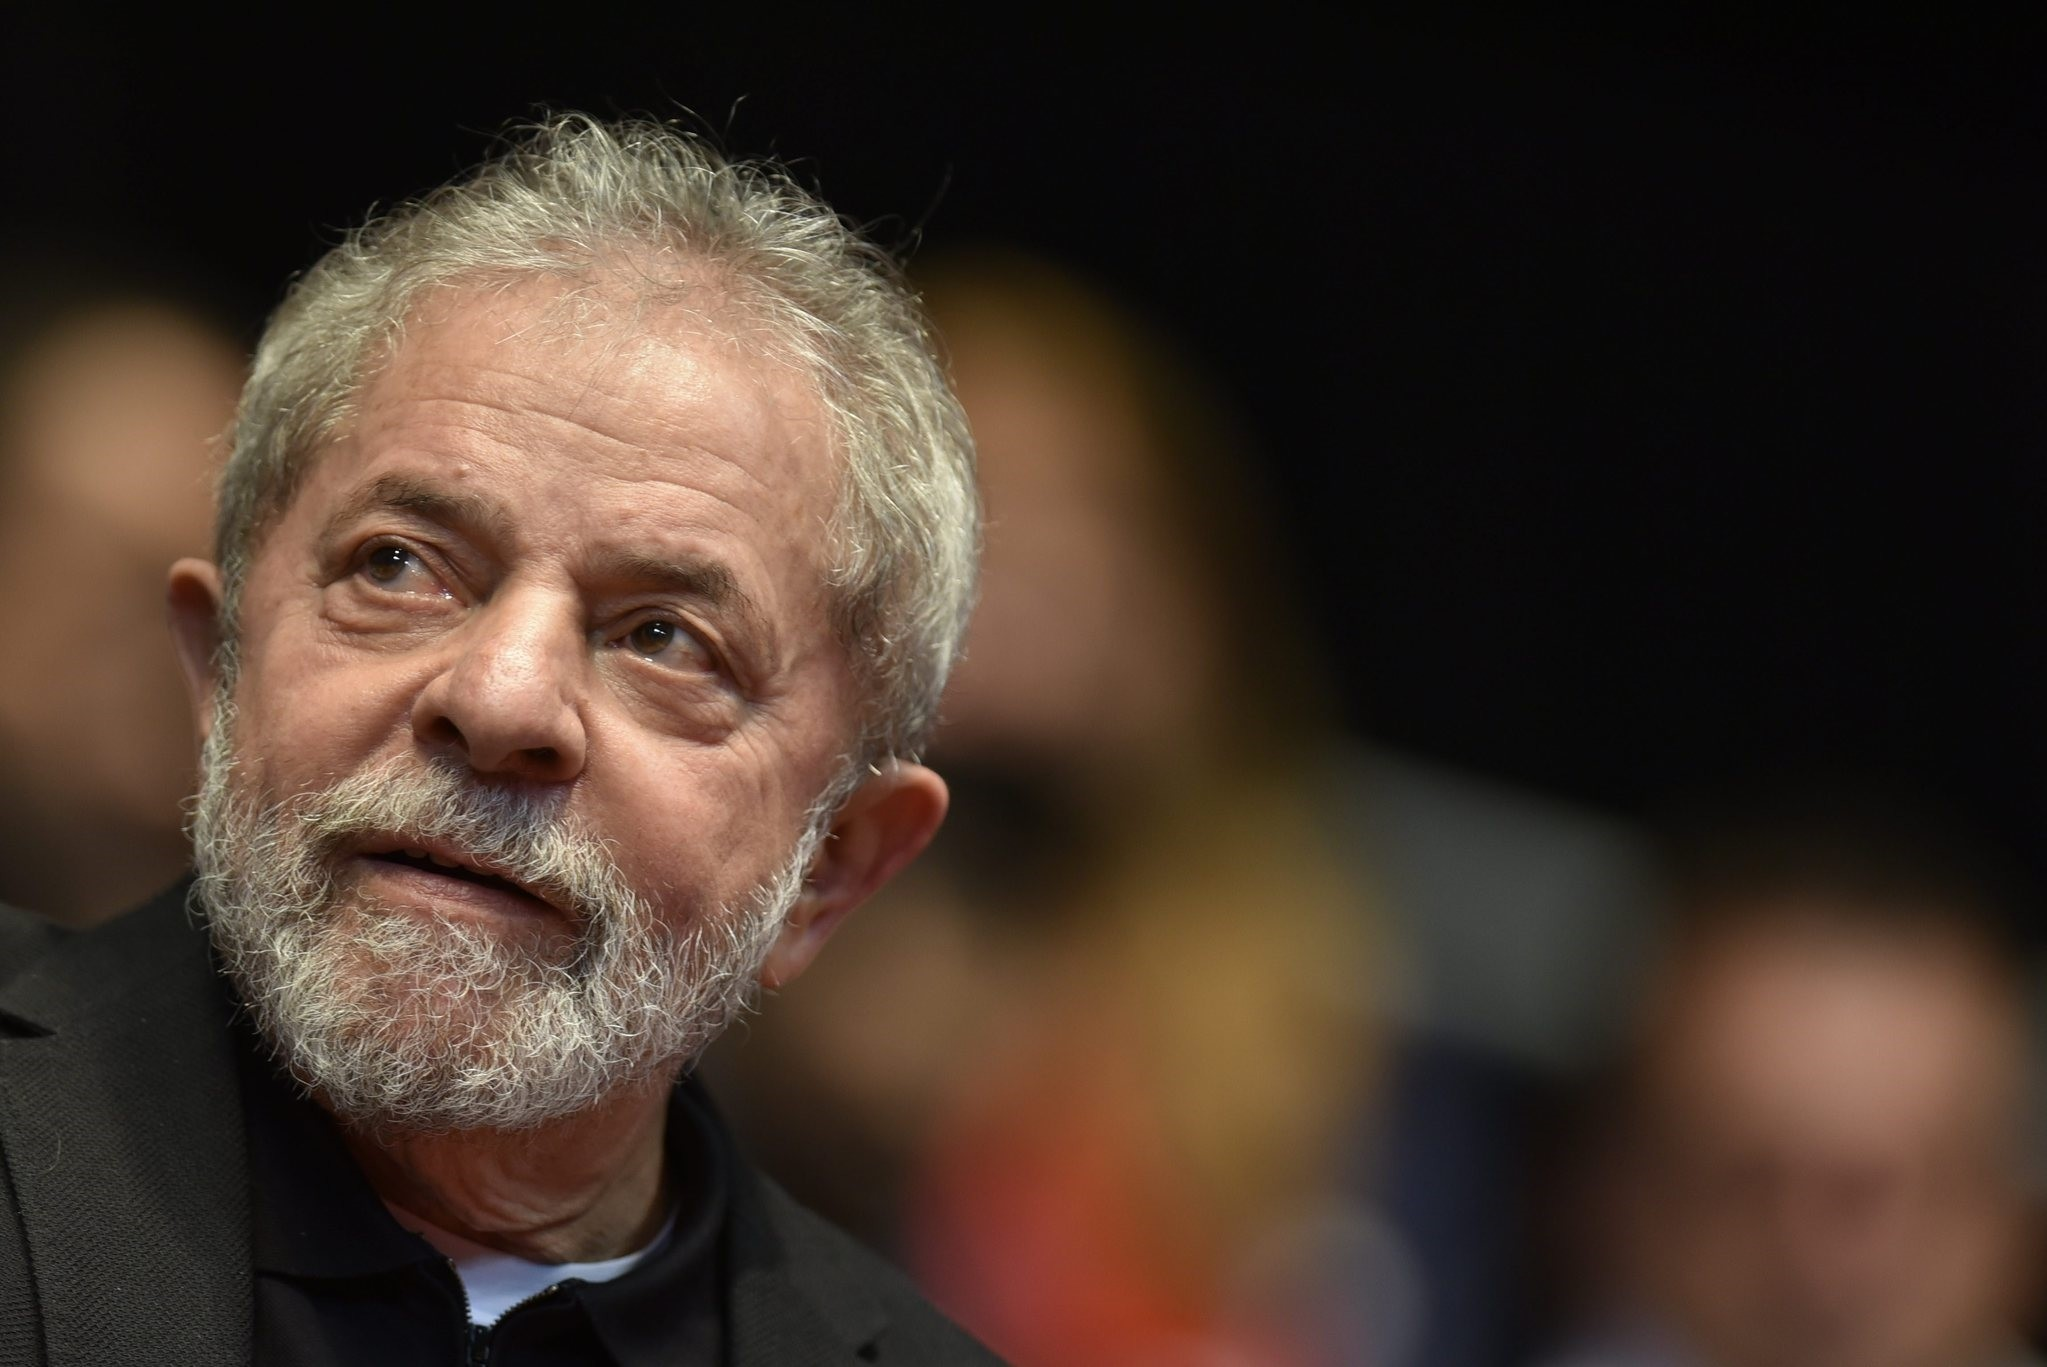 This file photo taken on August 29, 2015 shows Brazilian former president (2003-2011) Luiz Inacio Lula Da Silva participating in the 12th Congress of the Brazilian Workers Union (CUT) in Belo Horizonte, Brazil, on August 28, 2015. (AFP Photo)